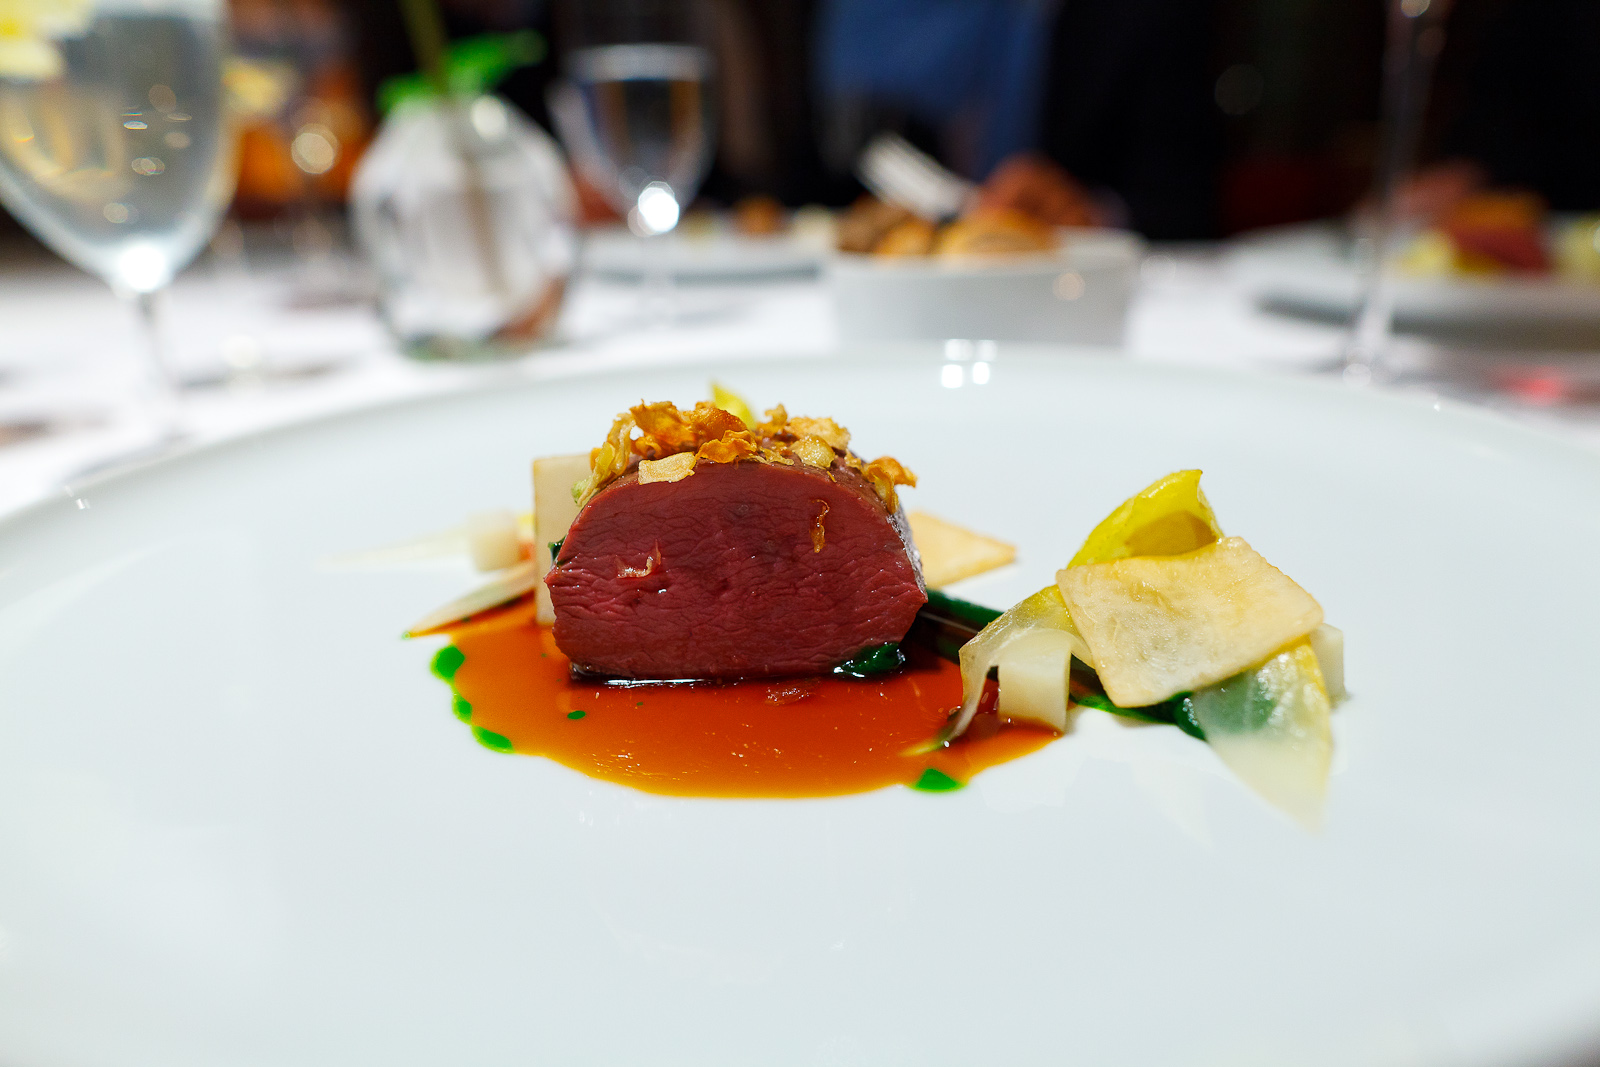 10th Course: Red deer calf from the Altmark region, parsley, vineyard peach and chicory, interior